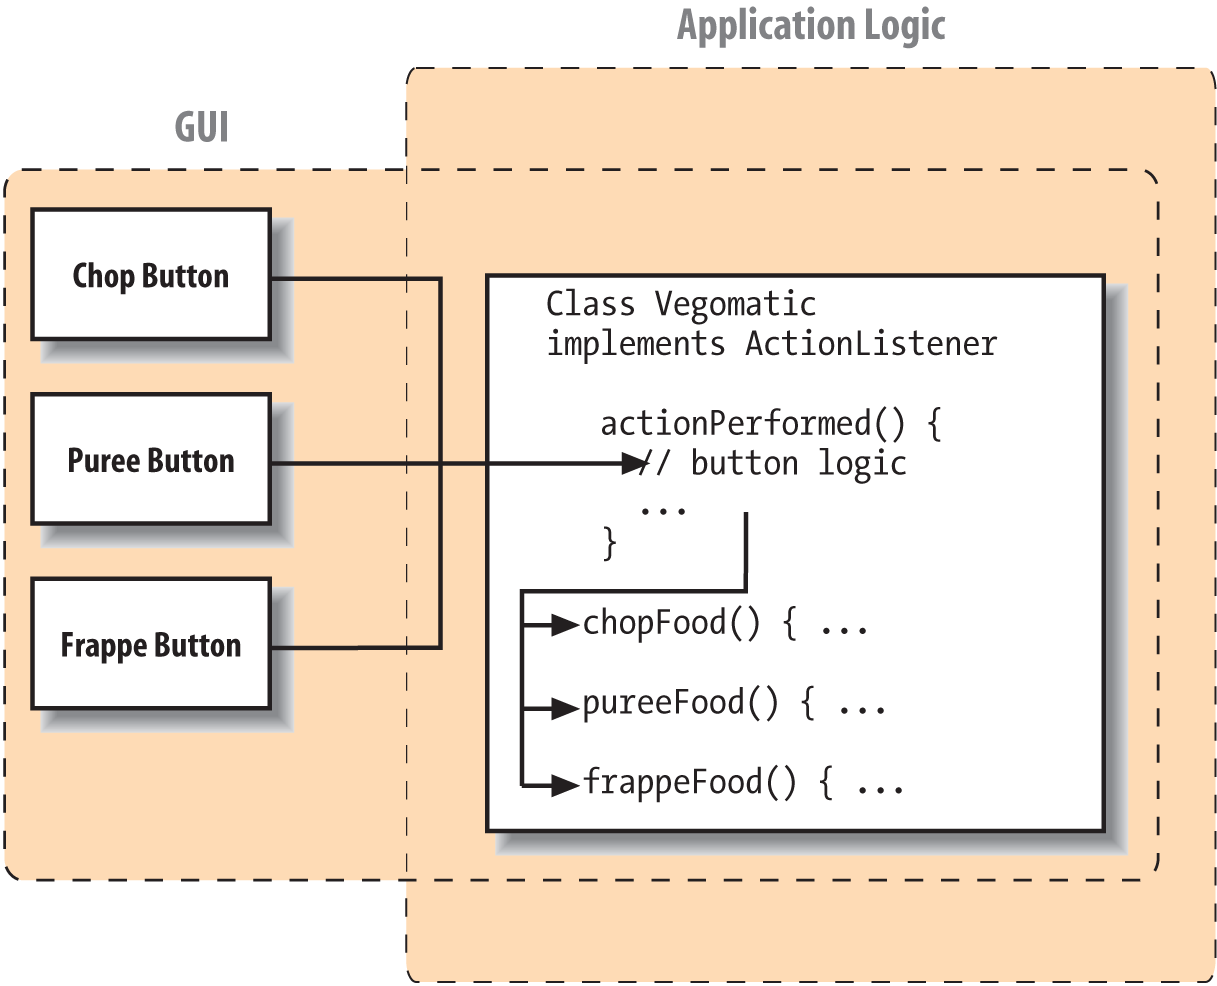 Implementing the ActionListener interface directly